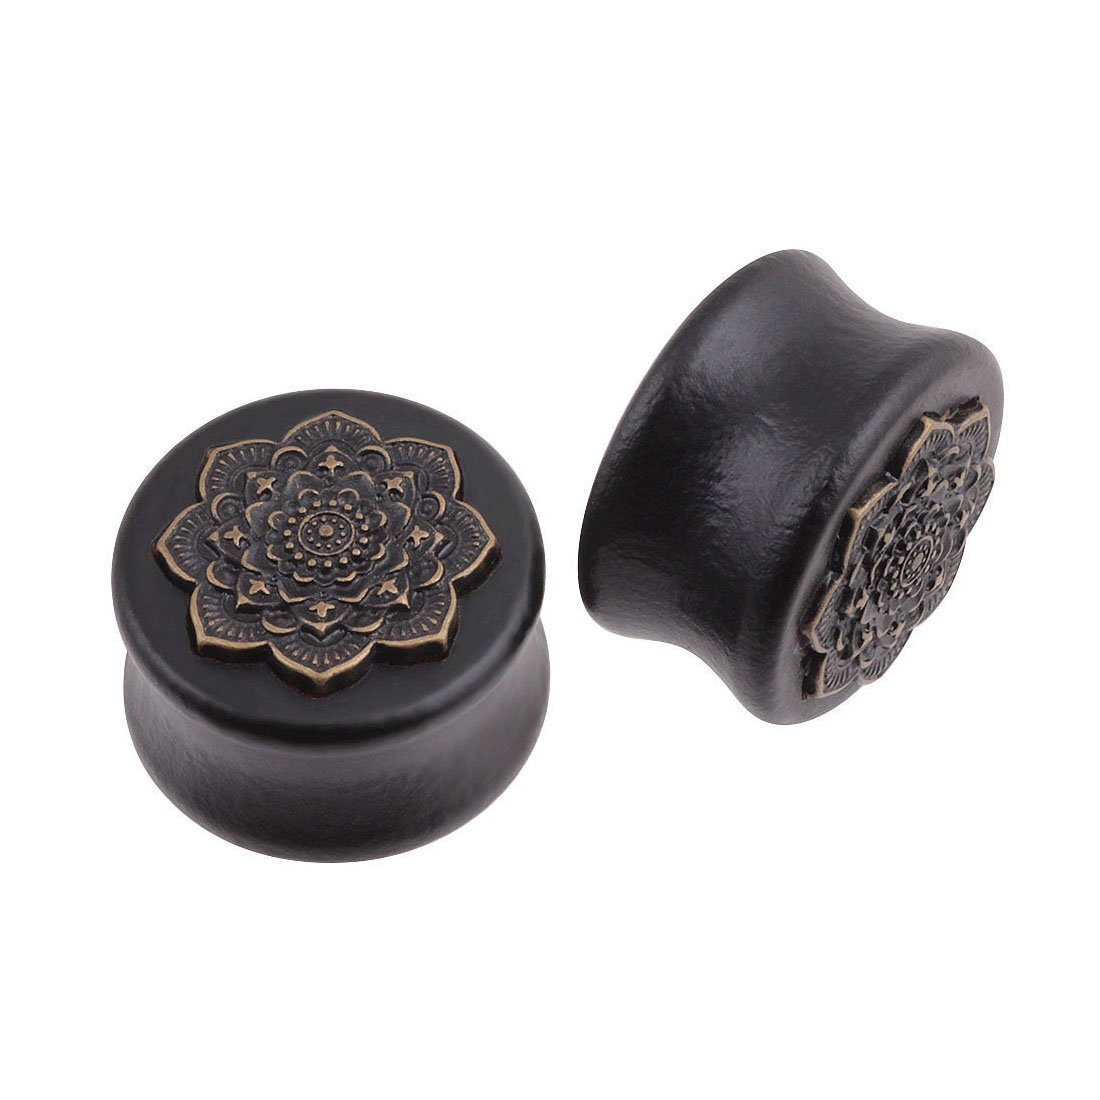 Molyveva Vintage Wood Saddle Ear Plugs Tunnels Stretcher Expander Lotus Tunnels Ear Piercing Jewelry